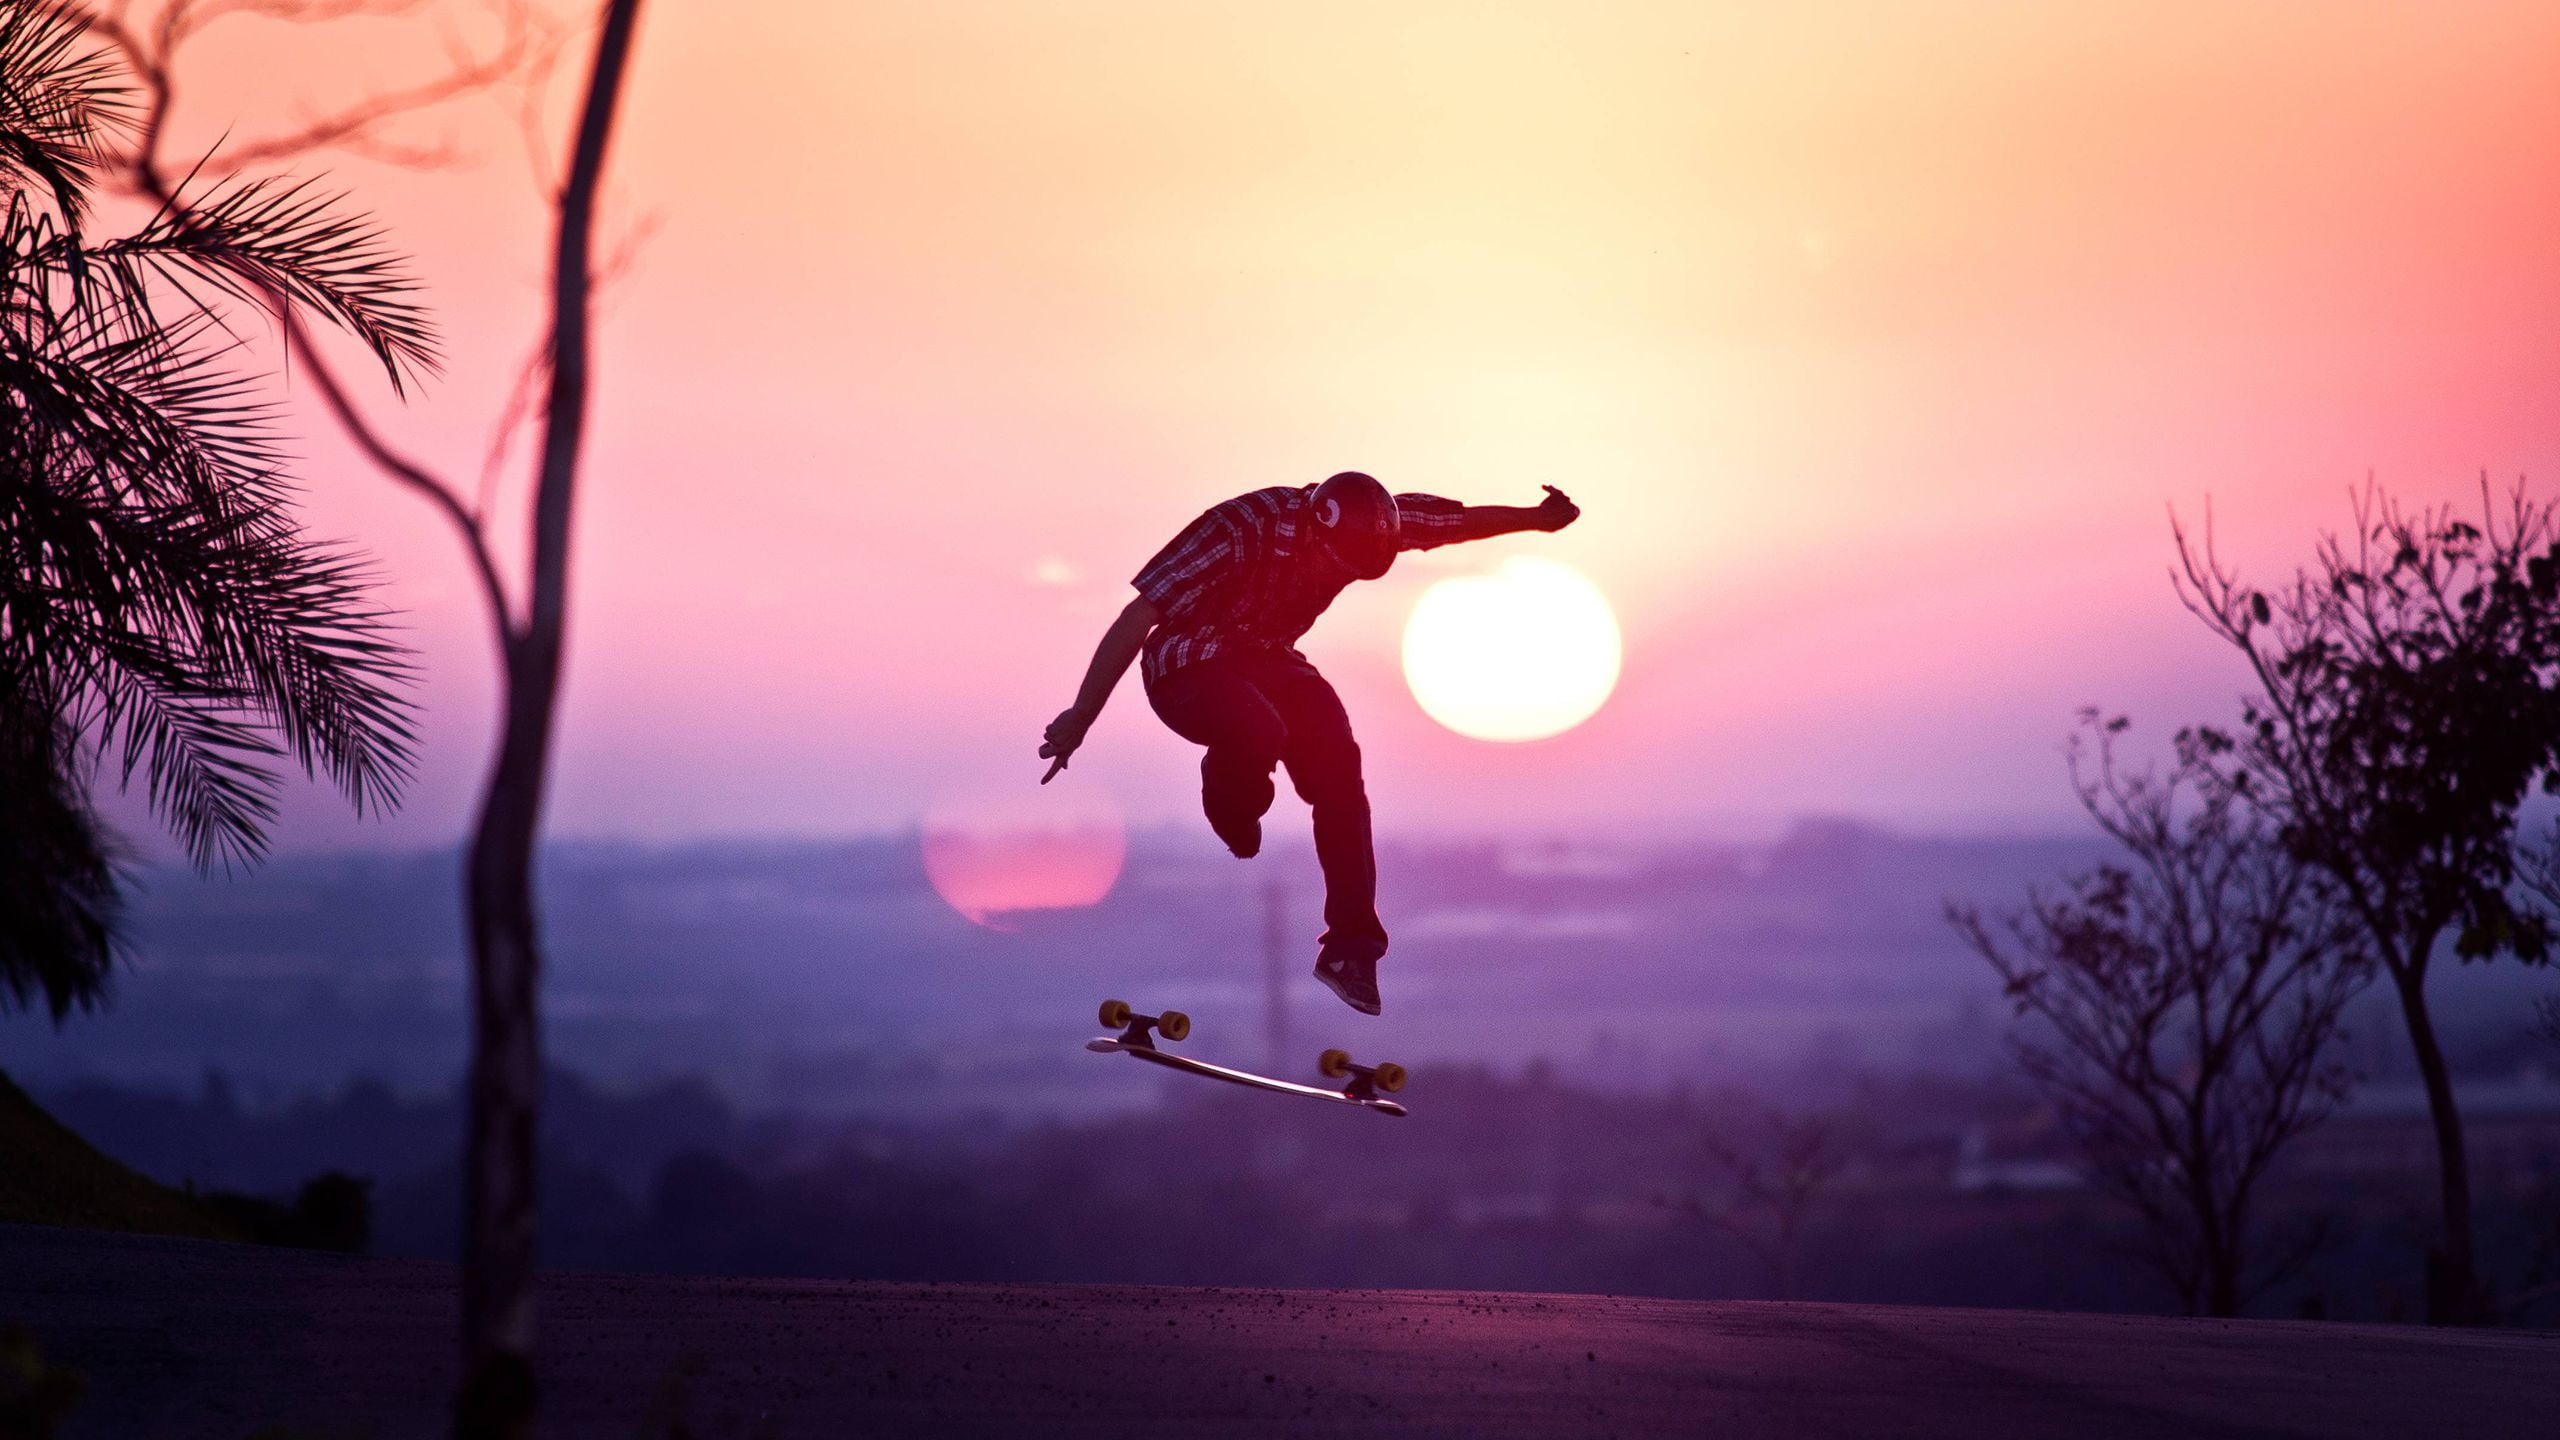 39 Skateboarding wallpapers HD Download 2560x1440